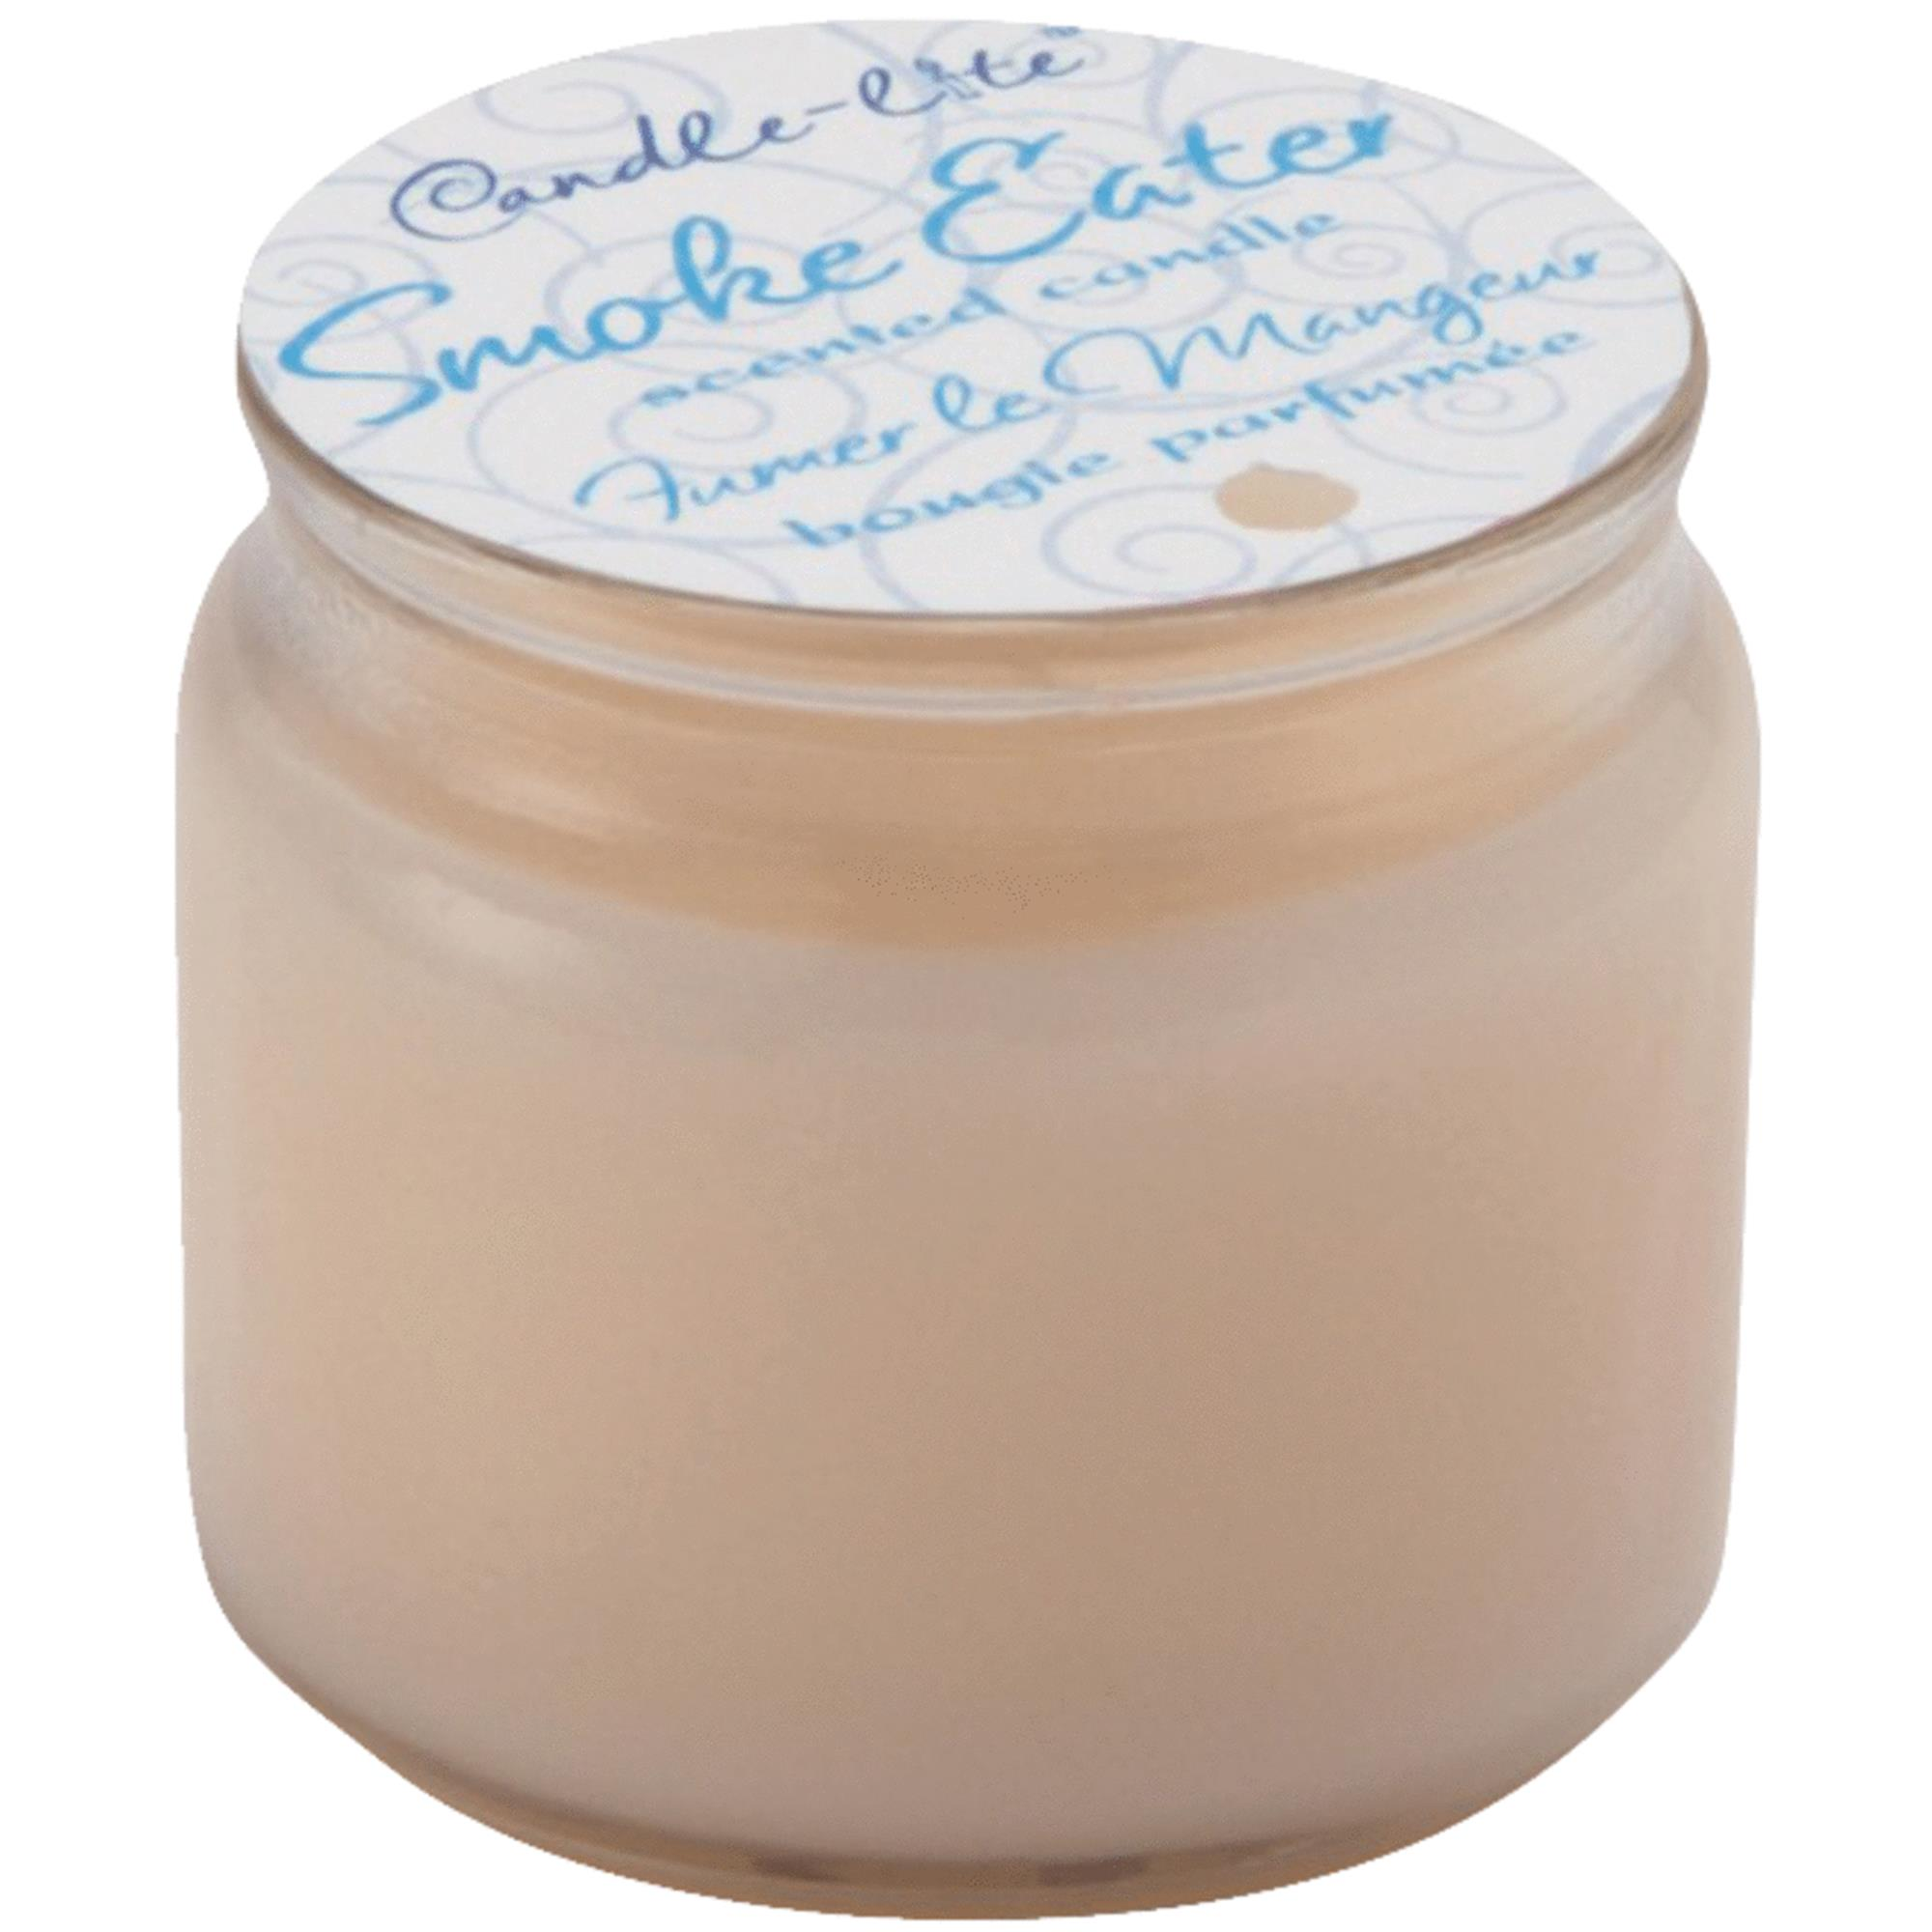 CANDLE LITE 4-oz. Smoke Eater Candle 2445900